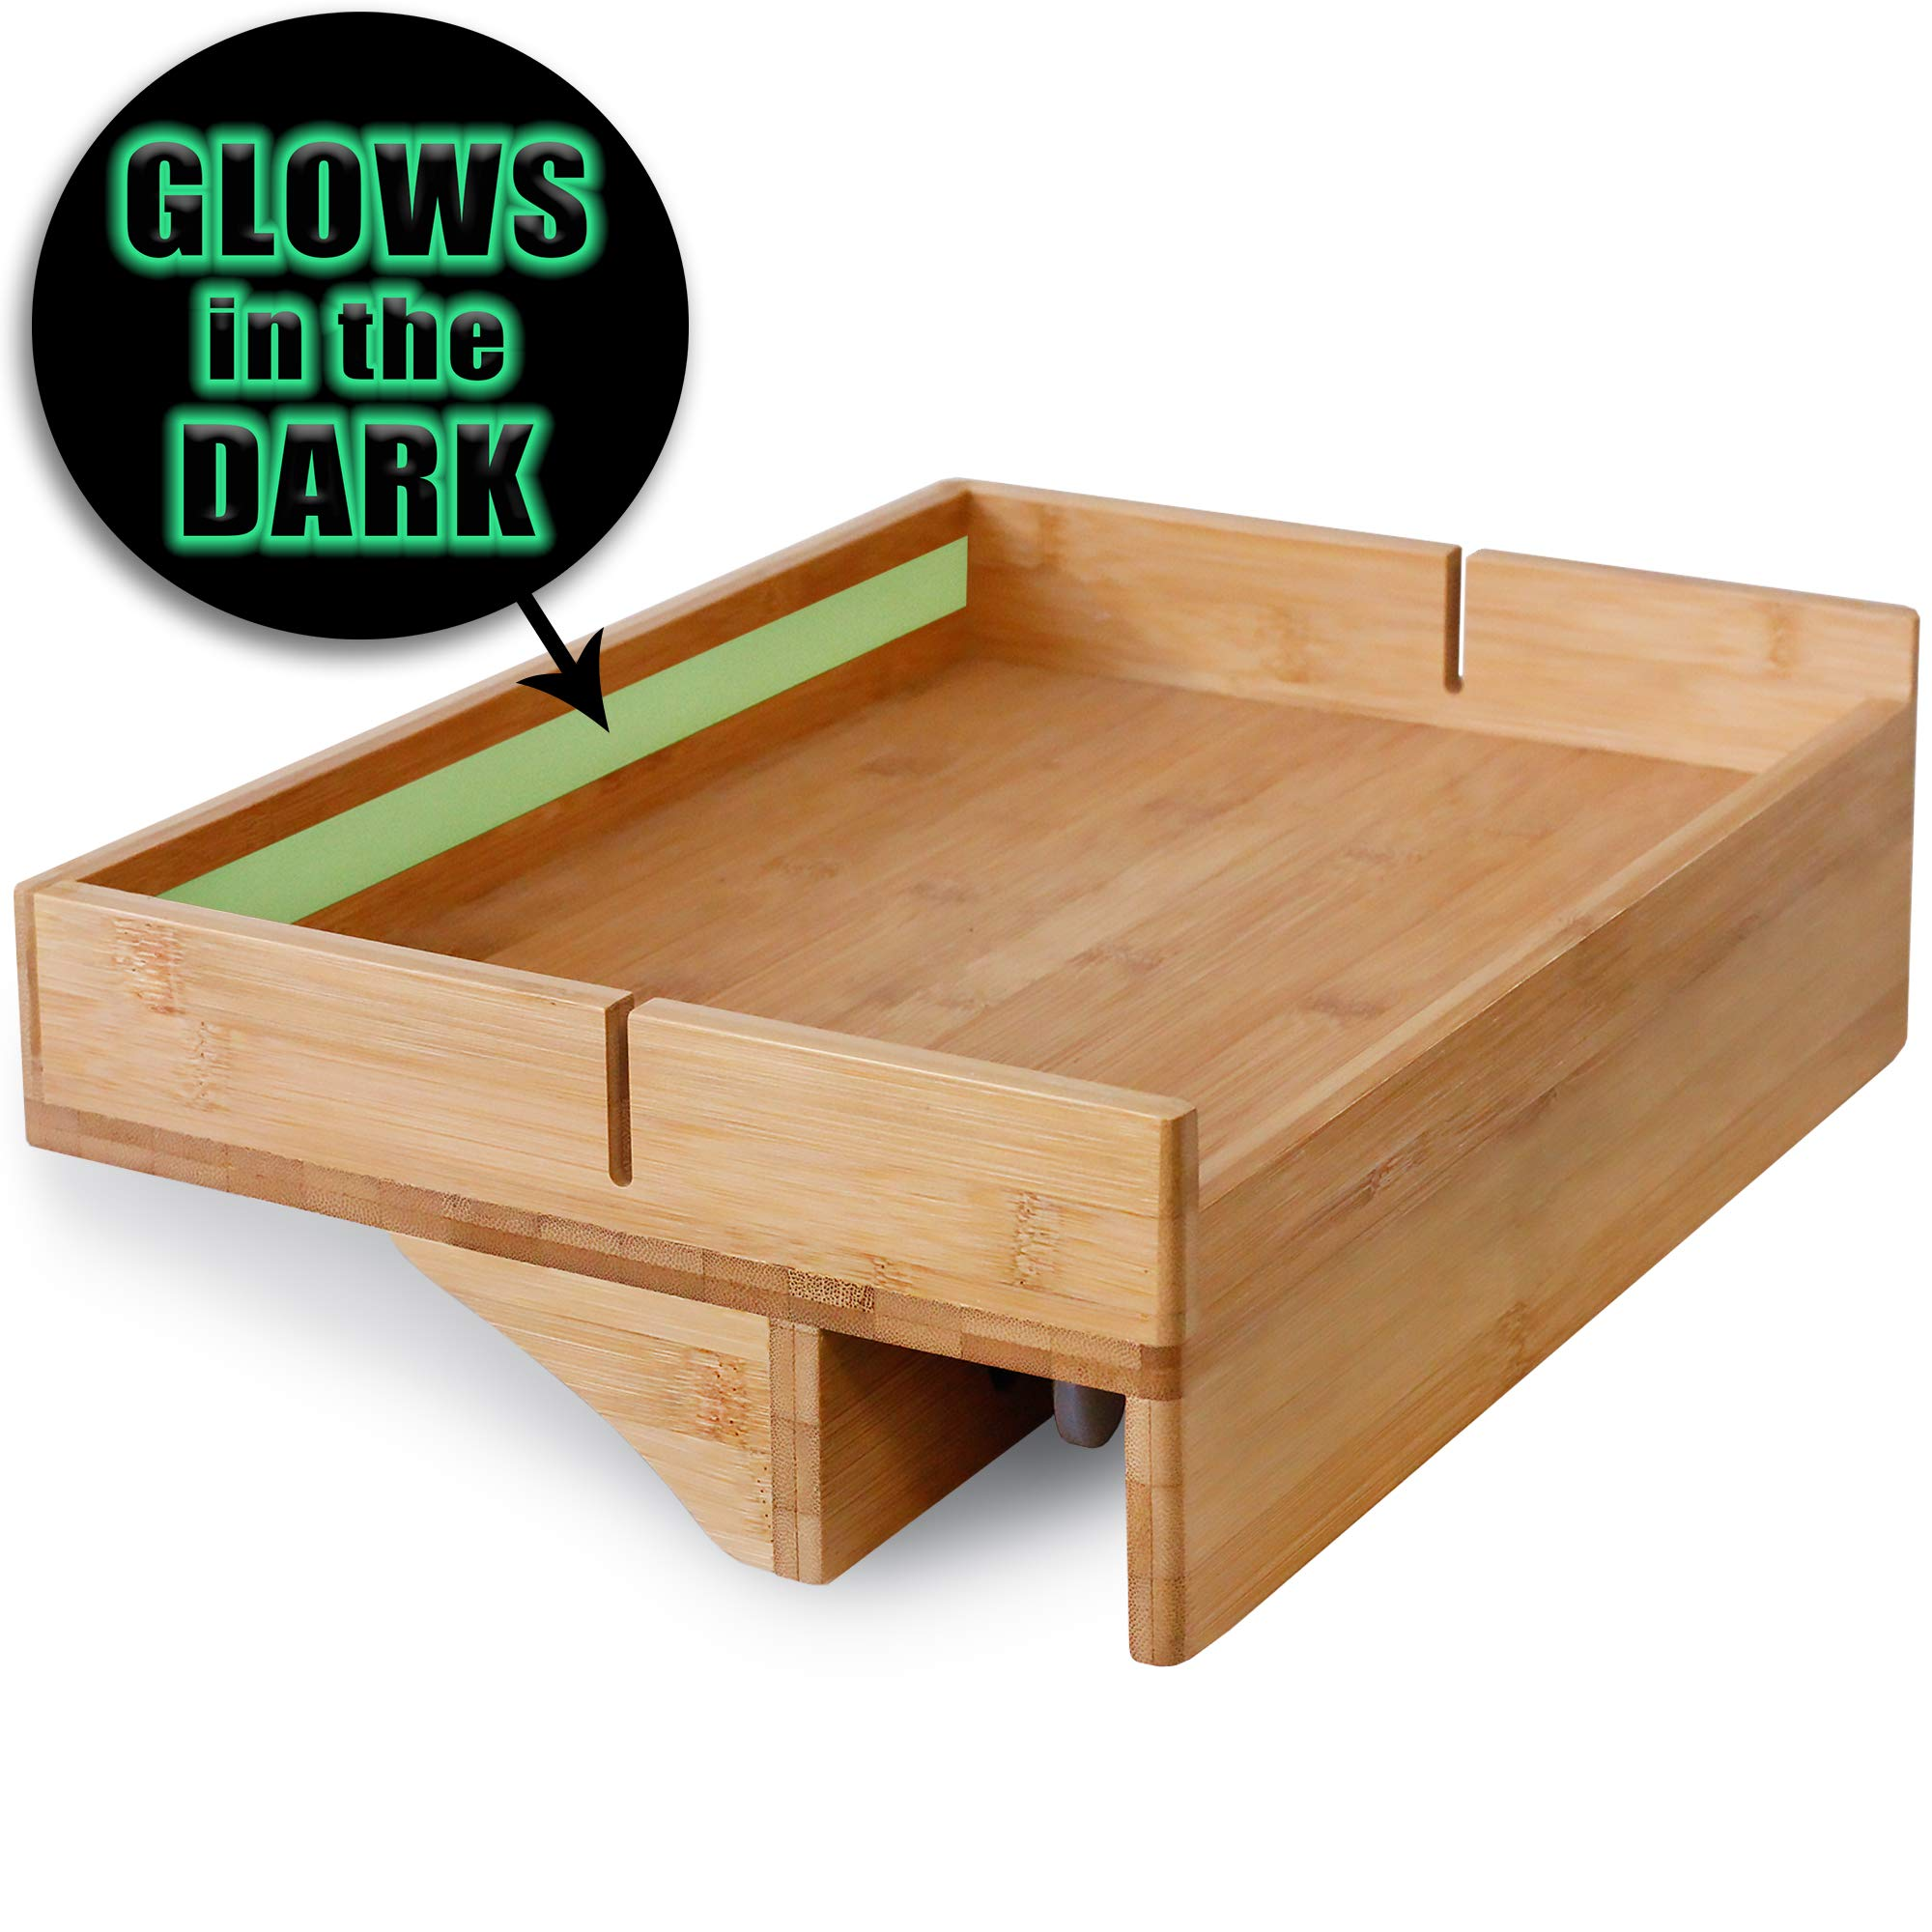 Bunk Bed Shelf Floating Nightstand With Glow In The Dark Wayfinding